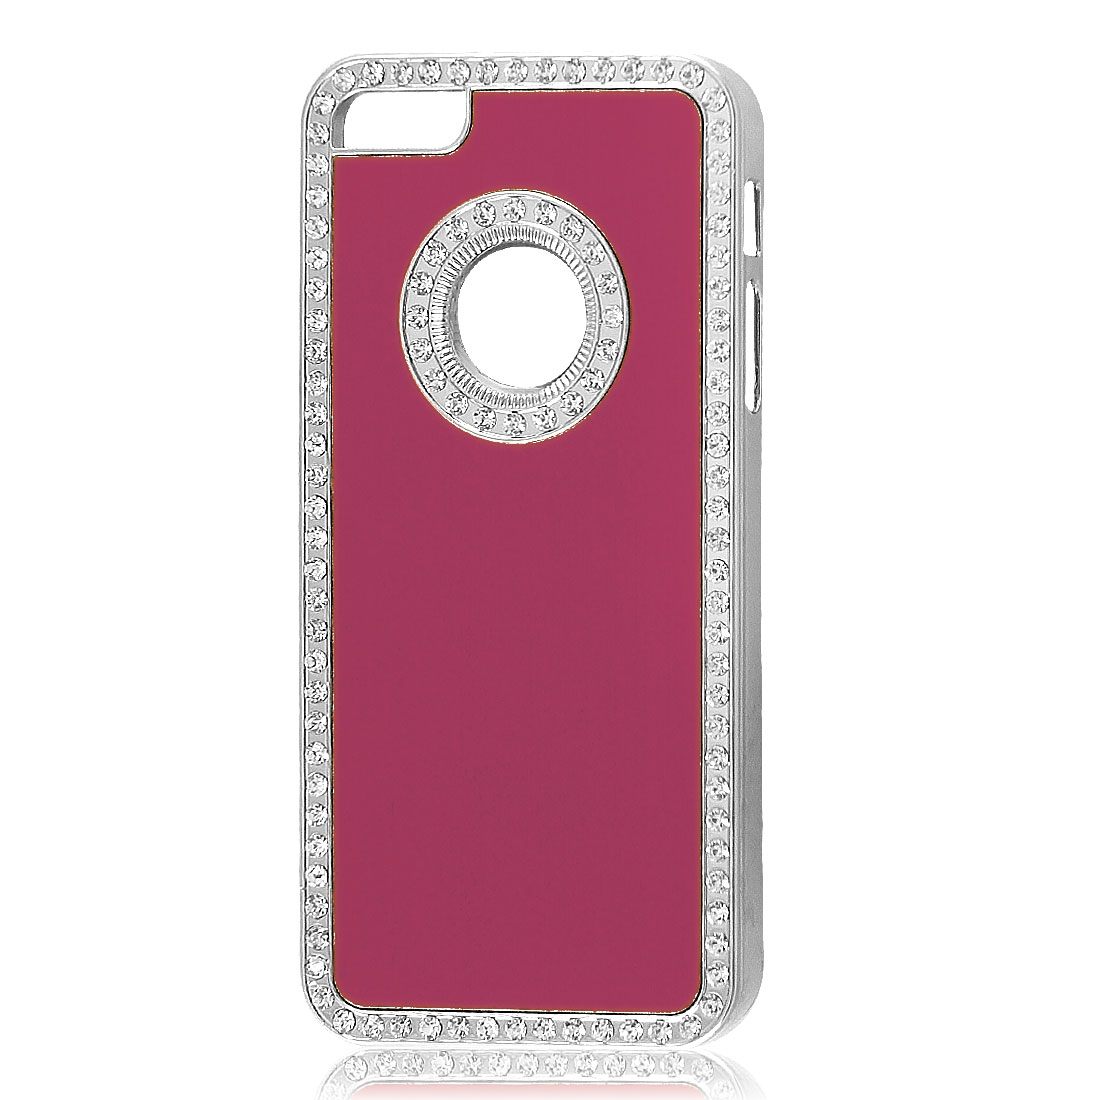 Glitter Bling Rhinestone Fuchsia Hard Back Case Cover for iPhone 5 5G 5th